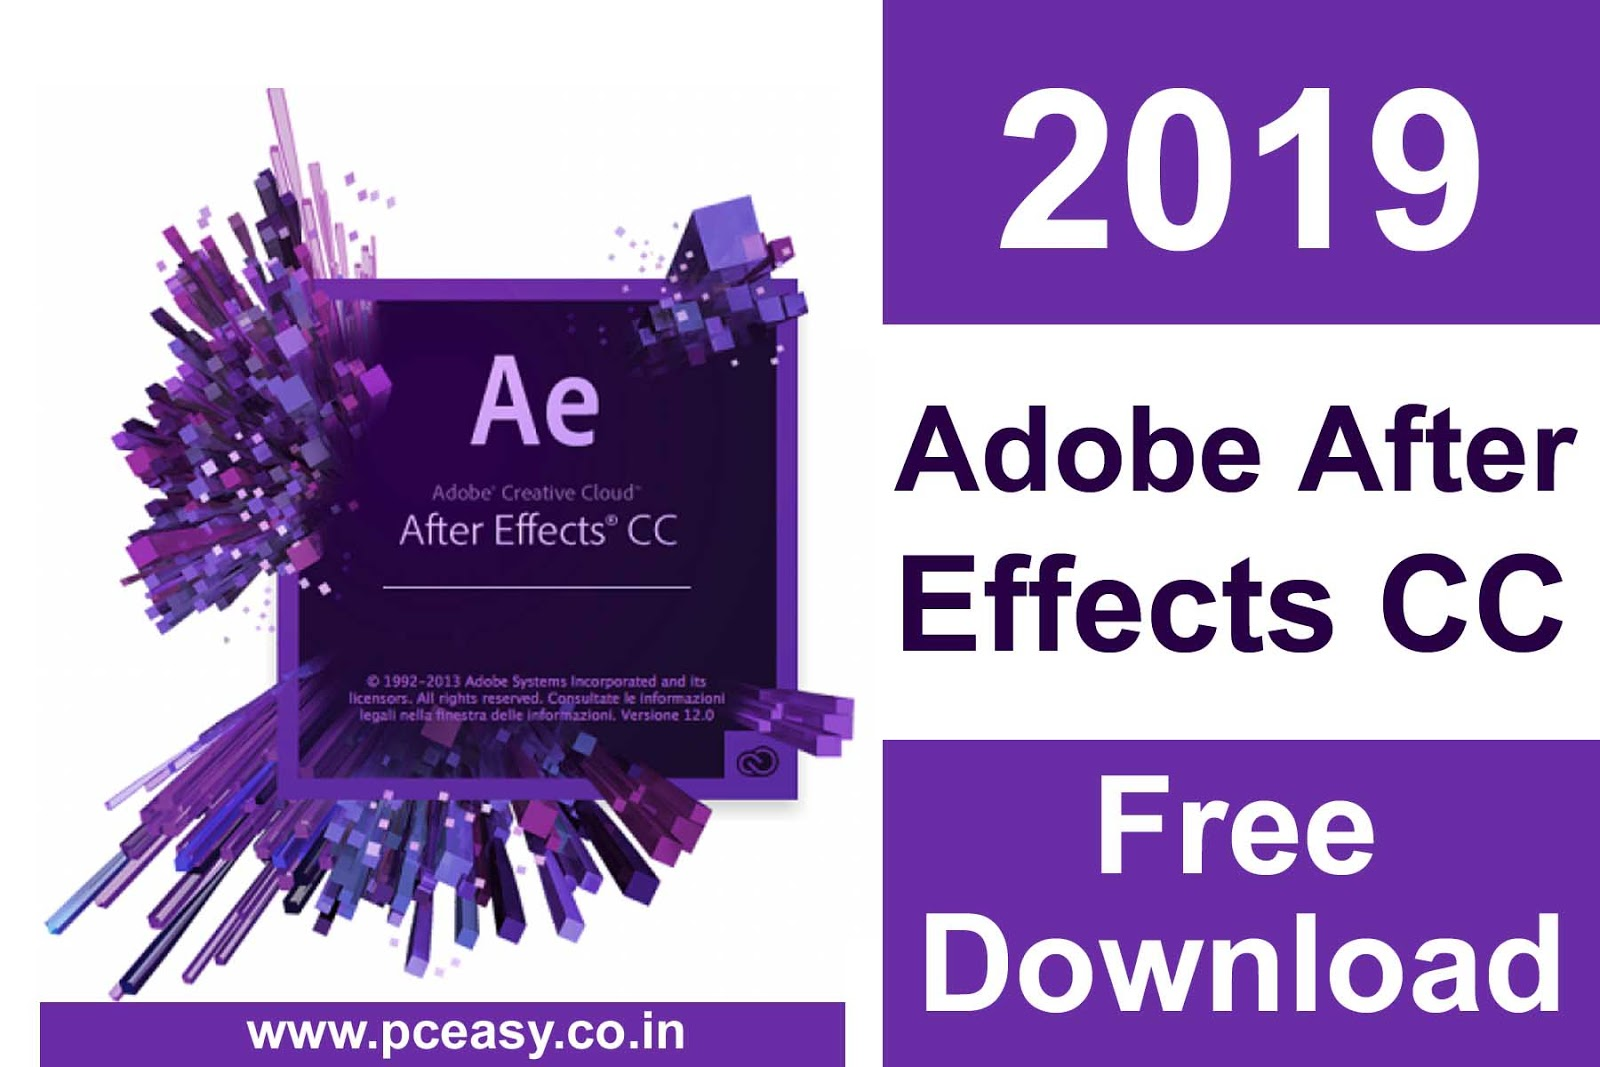 Adobe After Effects CC 2019 - Free Download for PC Full Version